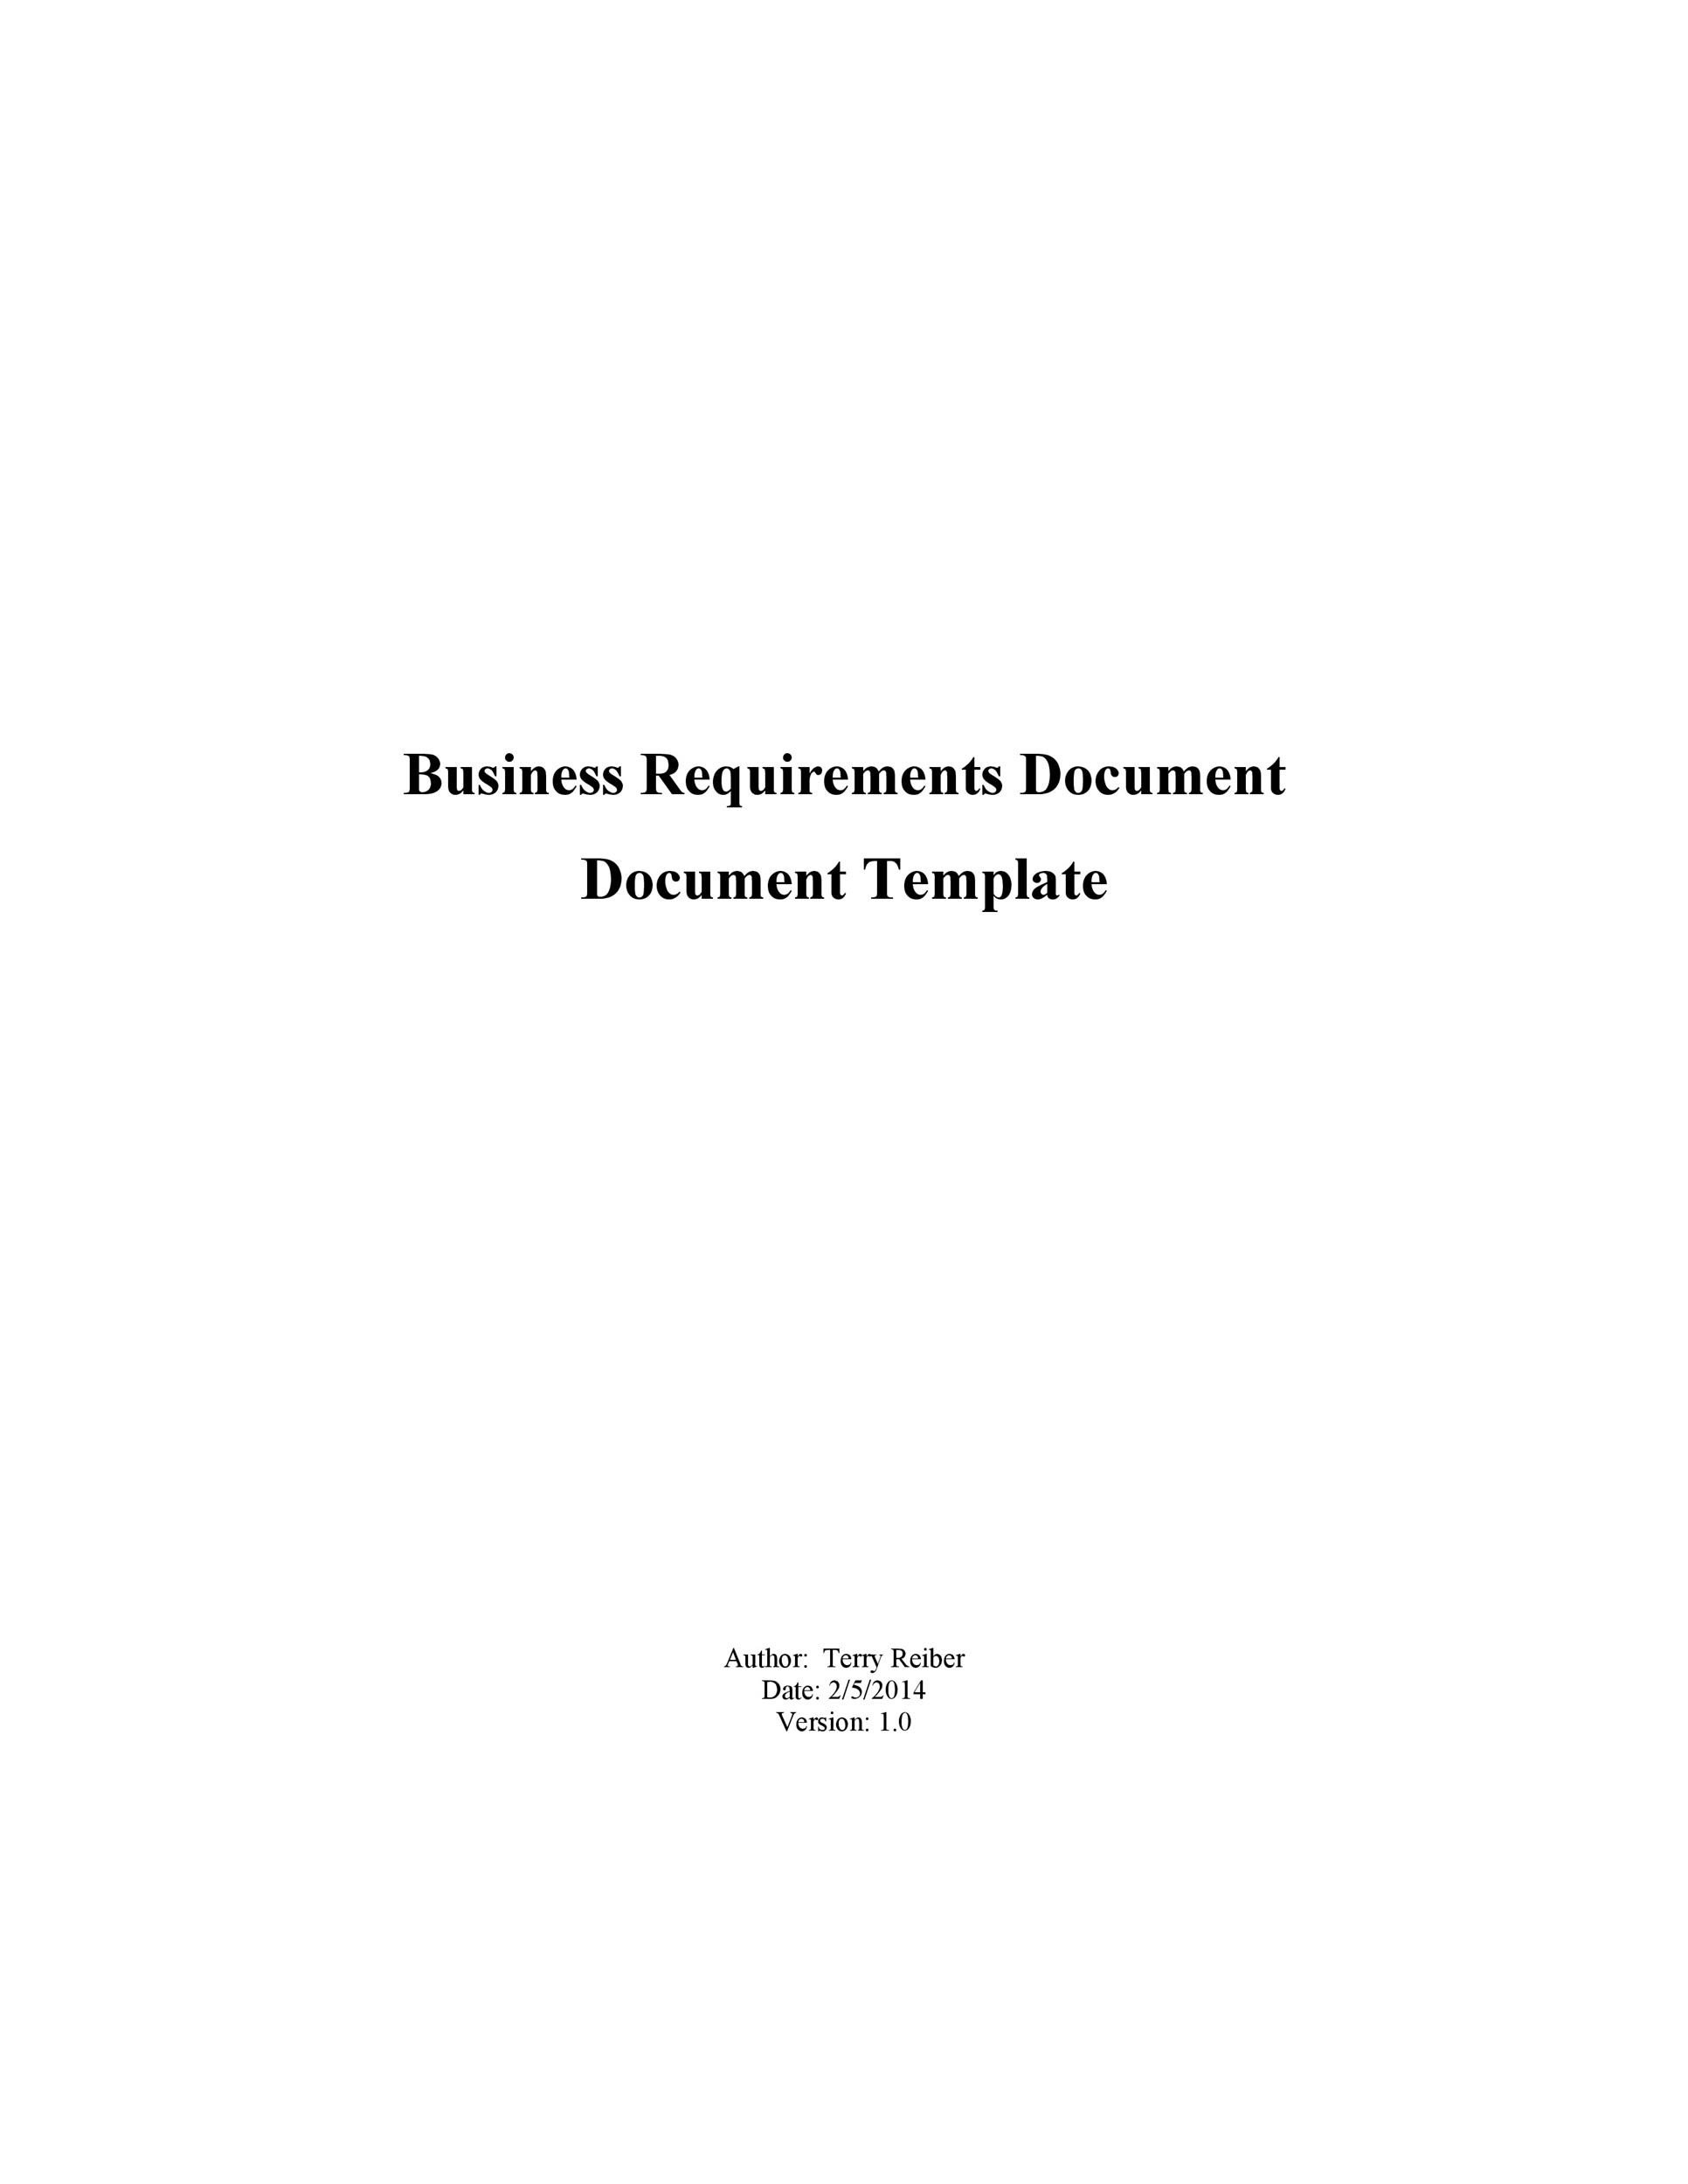 Free business requirements document template 35